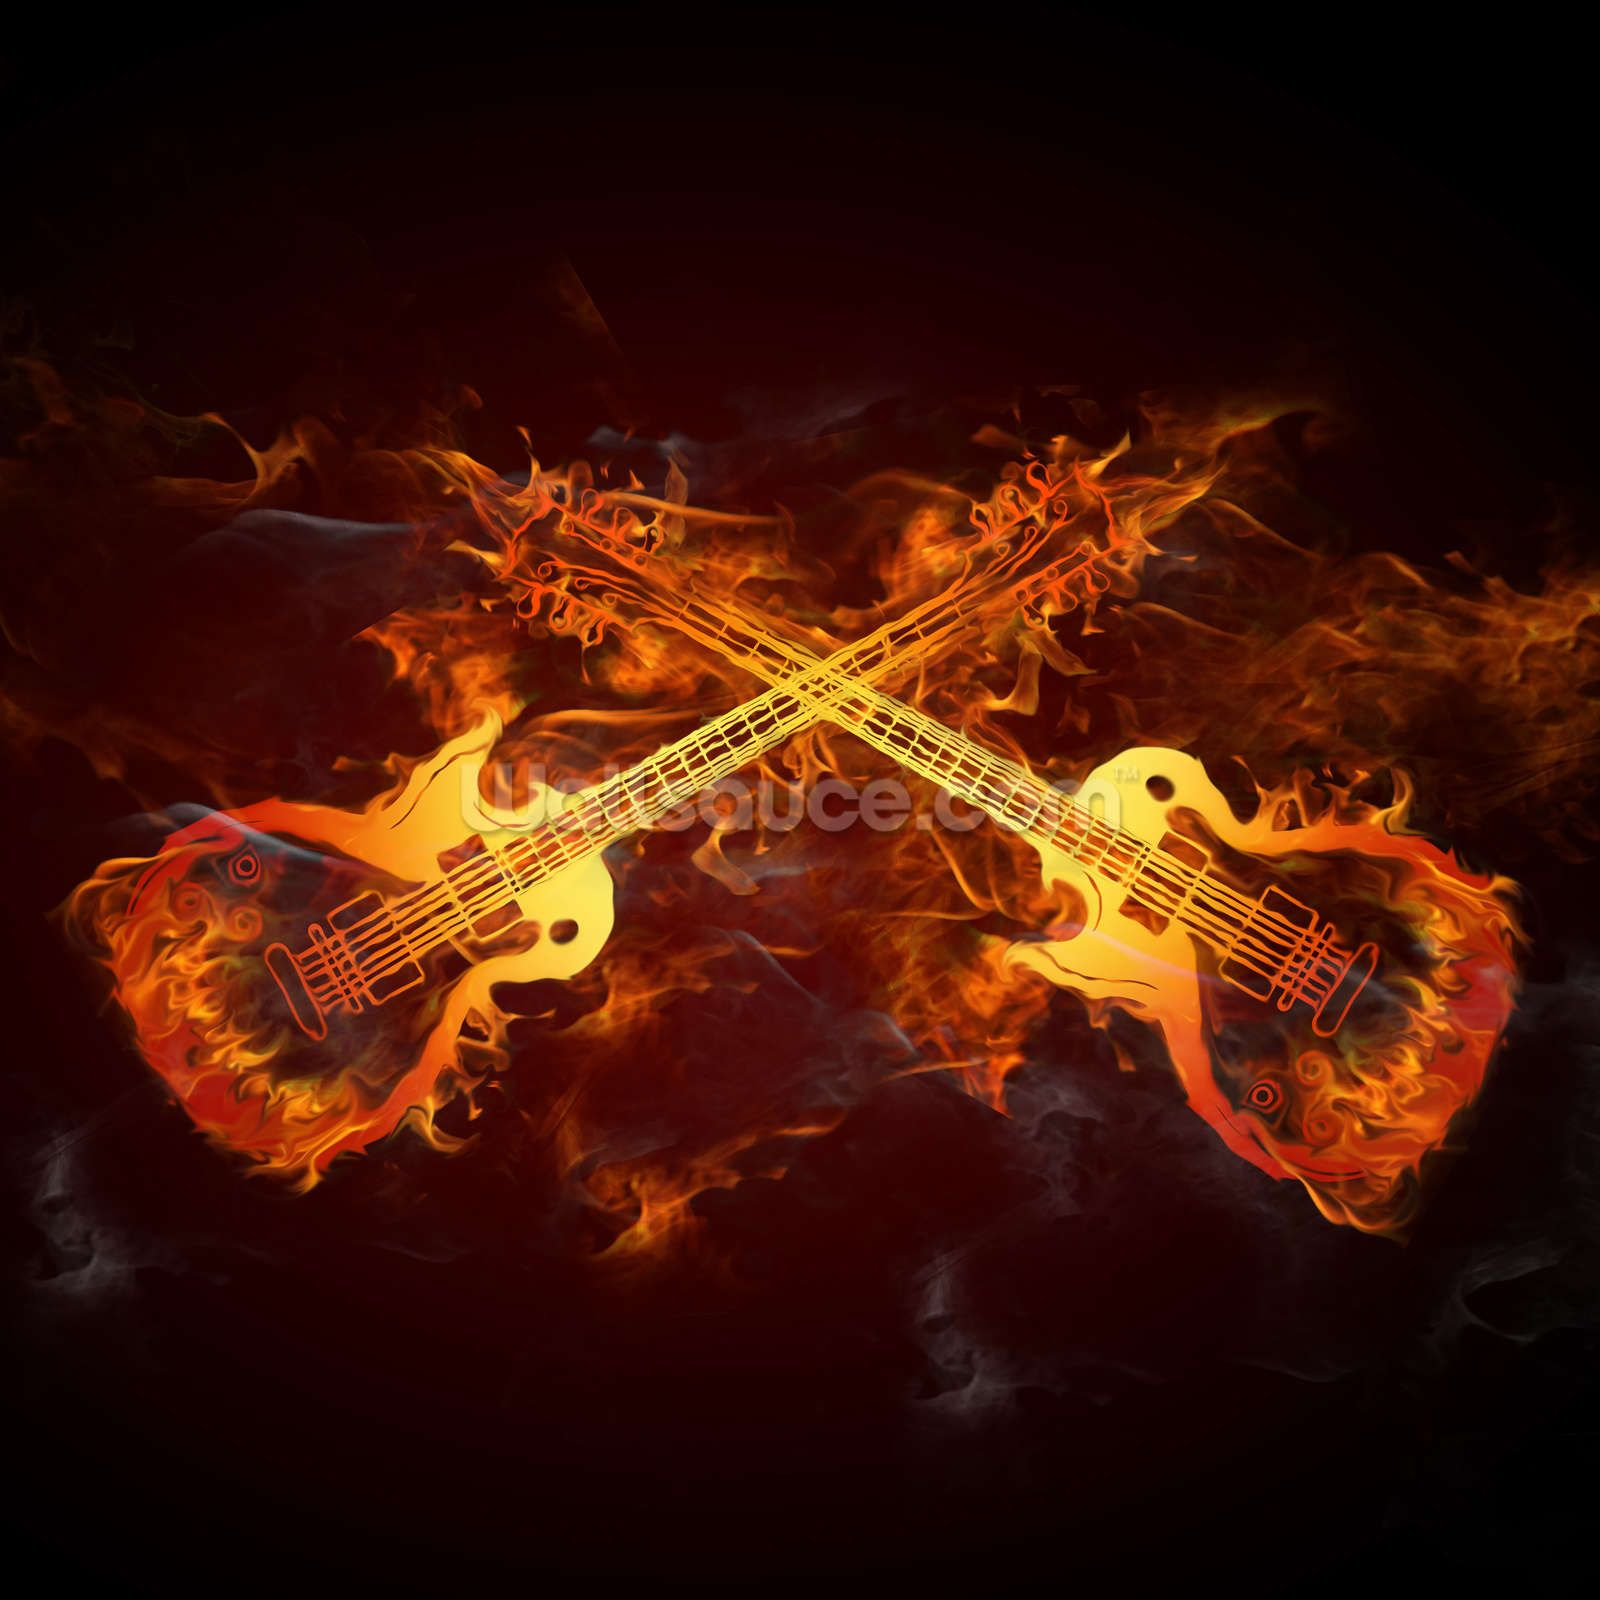 Guitars on Fire Mural wall art, Rock, roll dance, Wallpaper